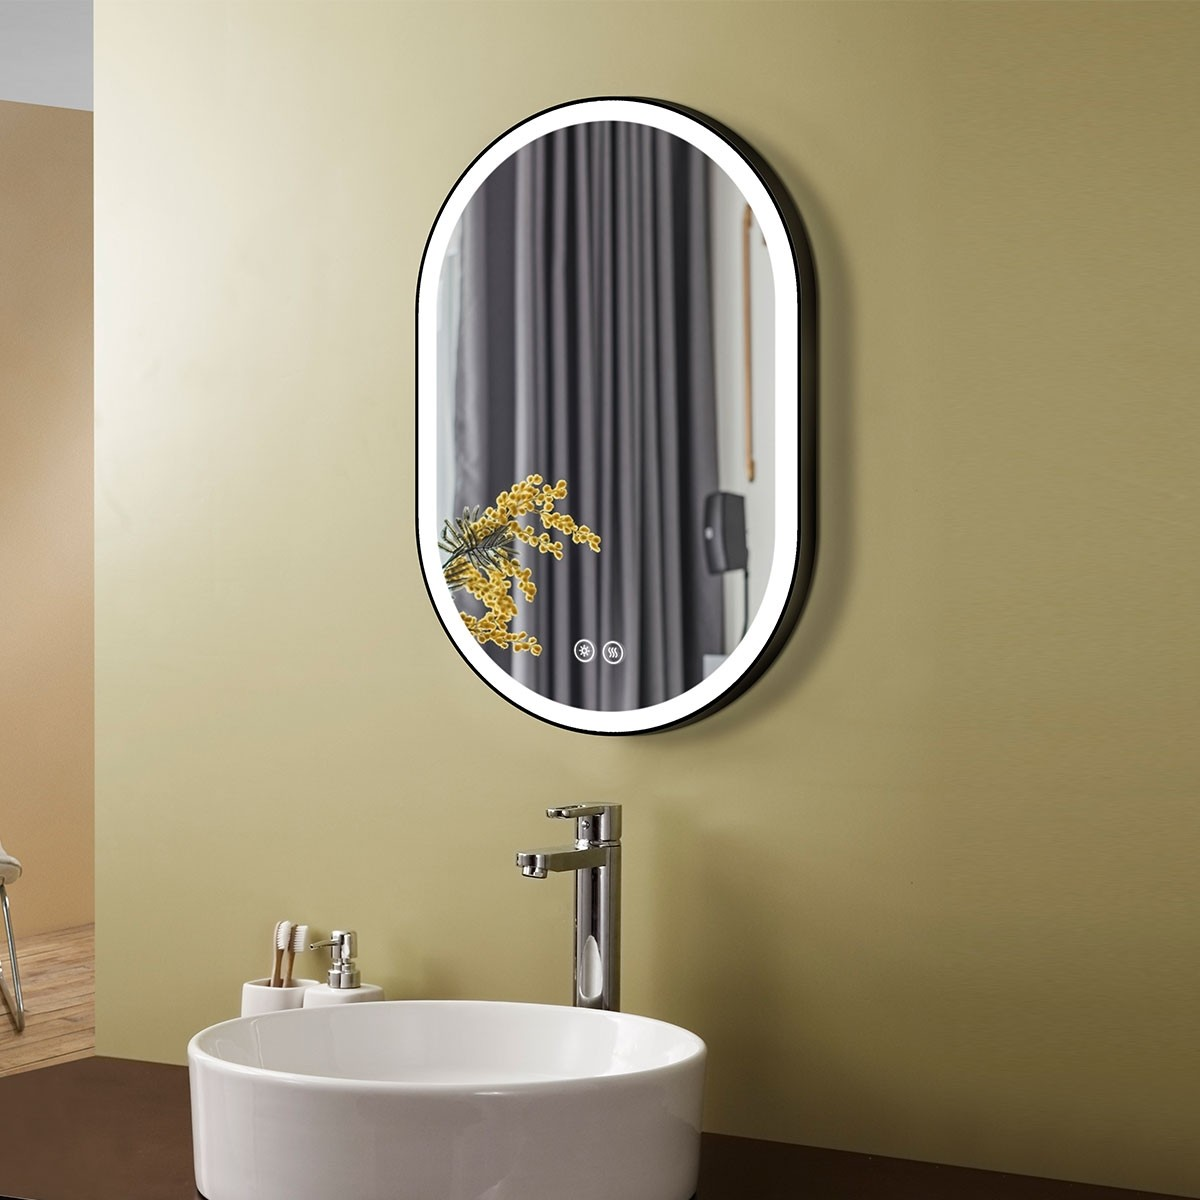 DECORAPORT 24 x 36 Inch LED Bathroom Mirror with Touch Button, Black, Anti Fog, Dimmable, Vertical & Horizontal Mount (D1301-2436)